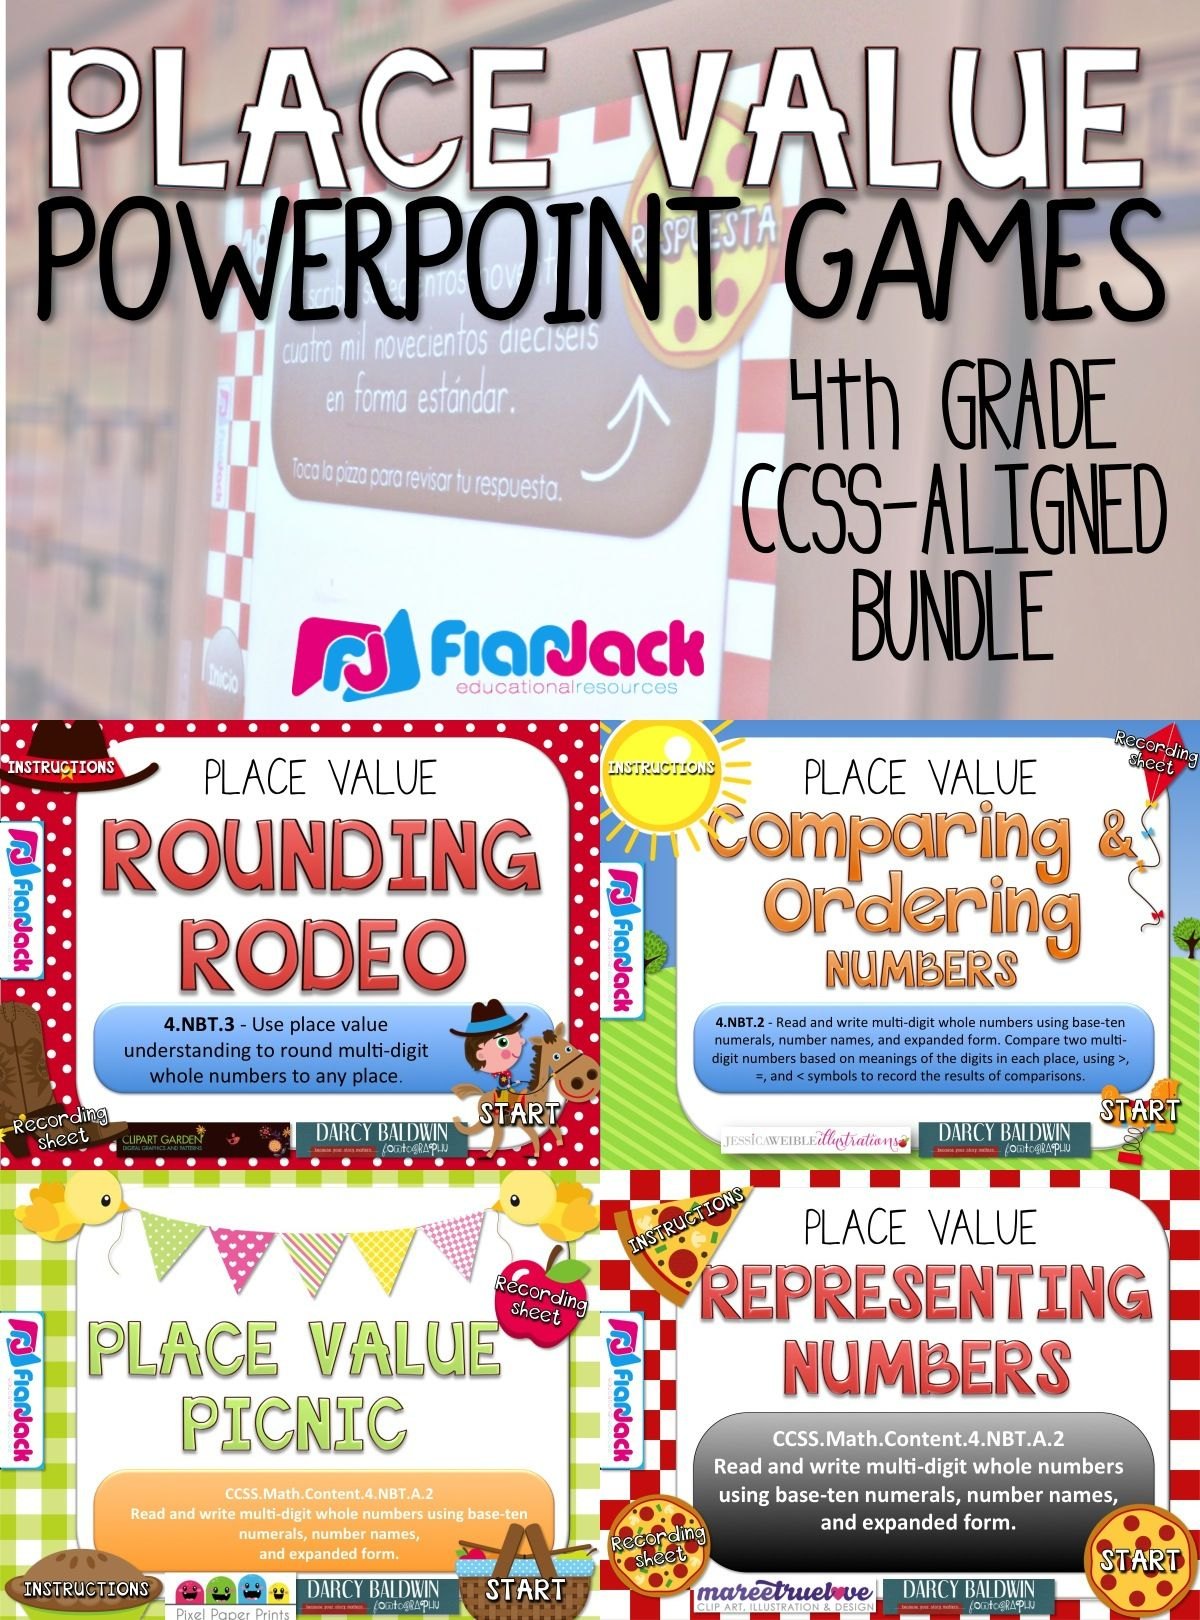 medium resolution of 4th grade place value powerpoint games bundle this bundle contains 4 ccss aligned powerpoint games that will motivate your students to practice place